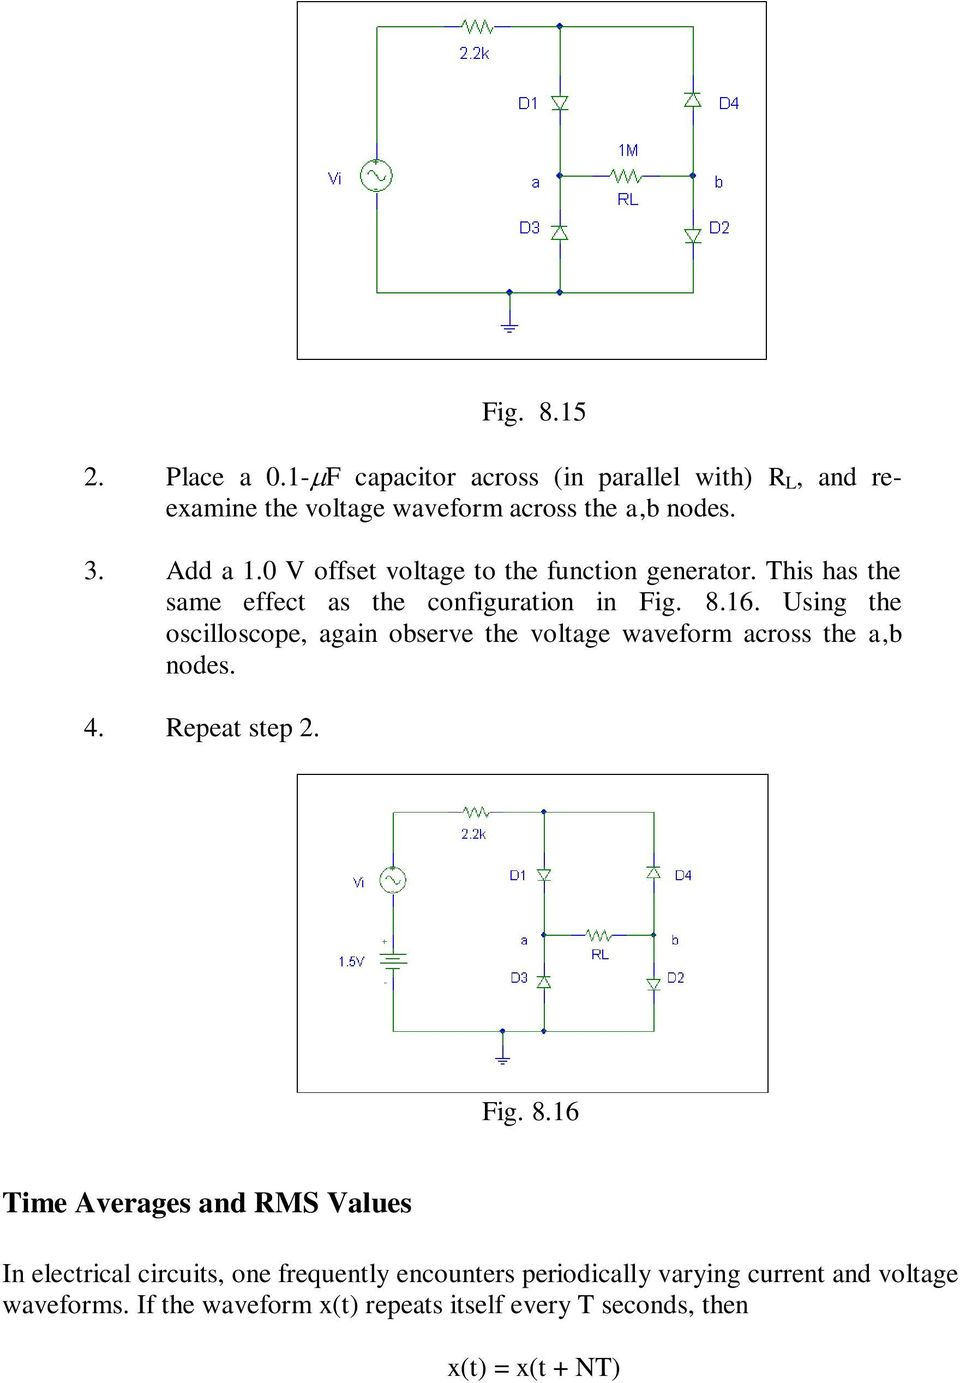 Diode Circuits Laboratory Fig 81a 81b Pdf Gt Ac Power Filter And Phone Line Homemade Circuit Using The Oscilloscope Again Observe Voltage Waveform Across Ab Nodes